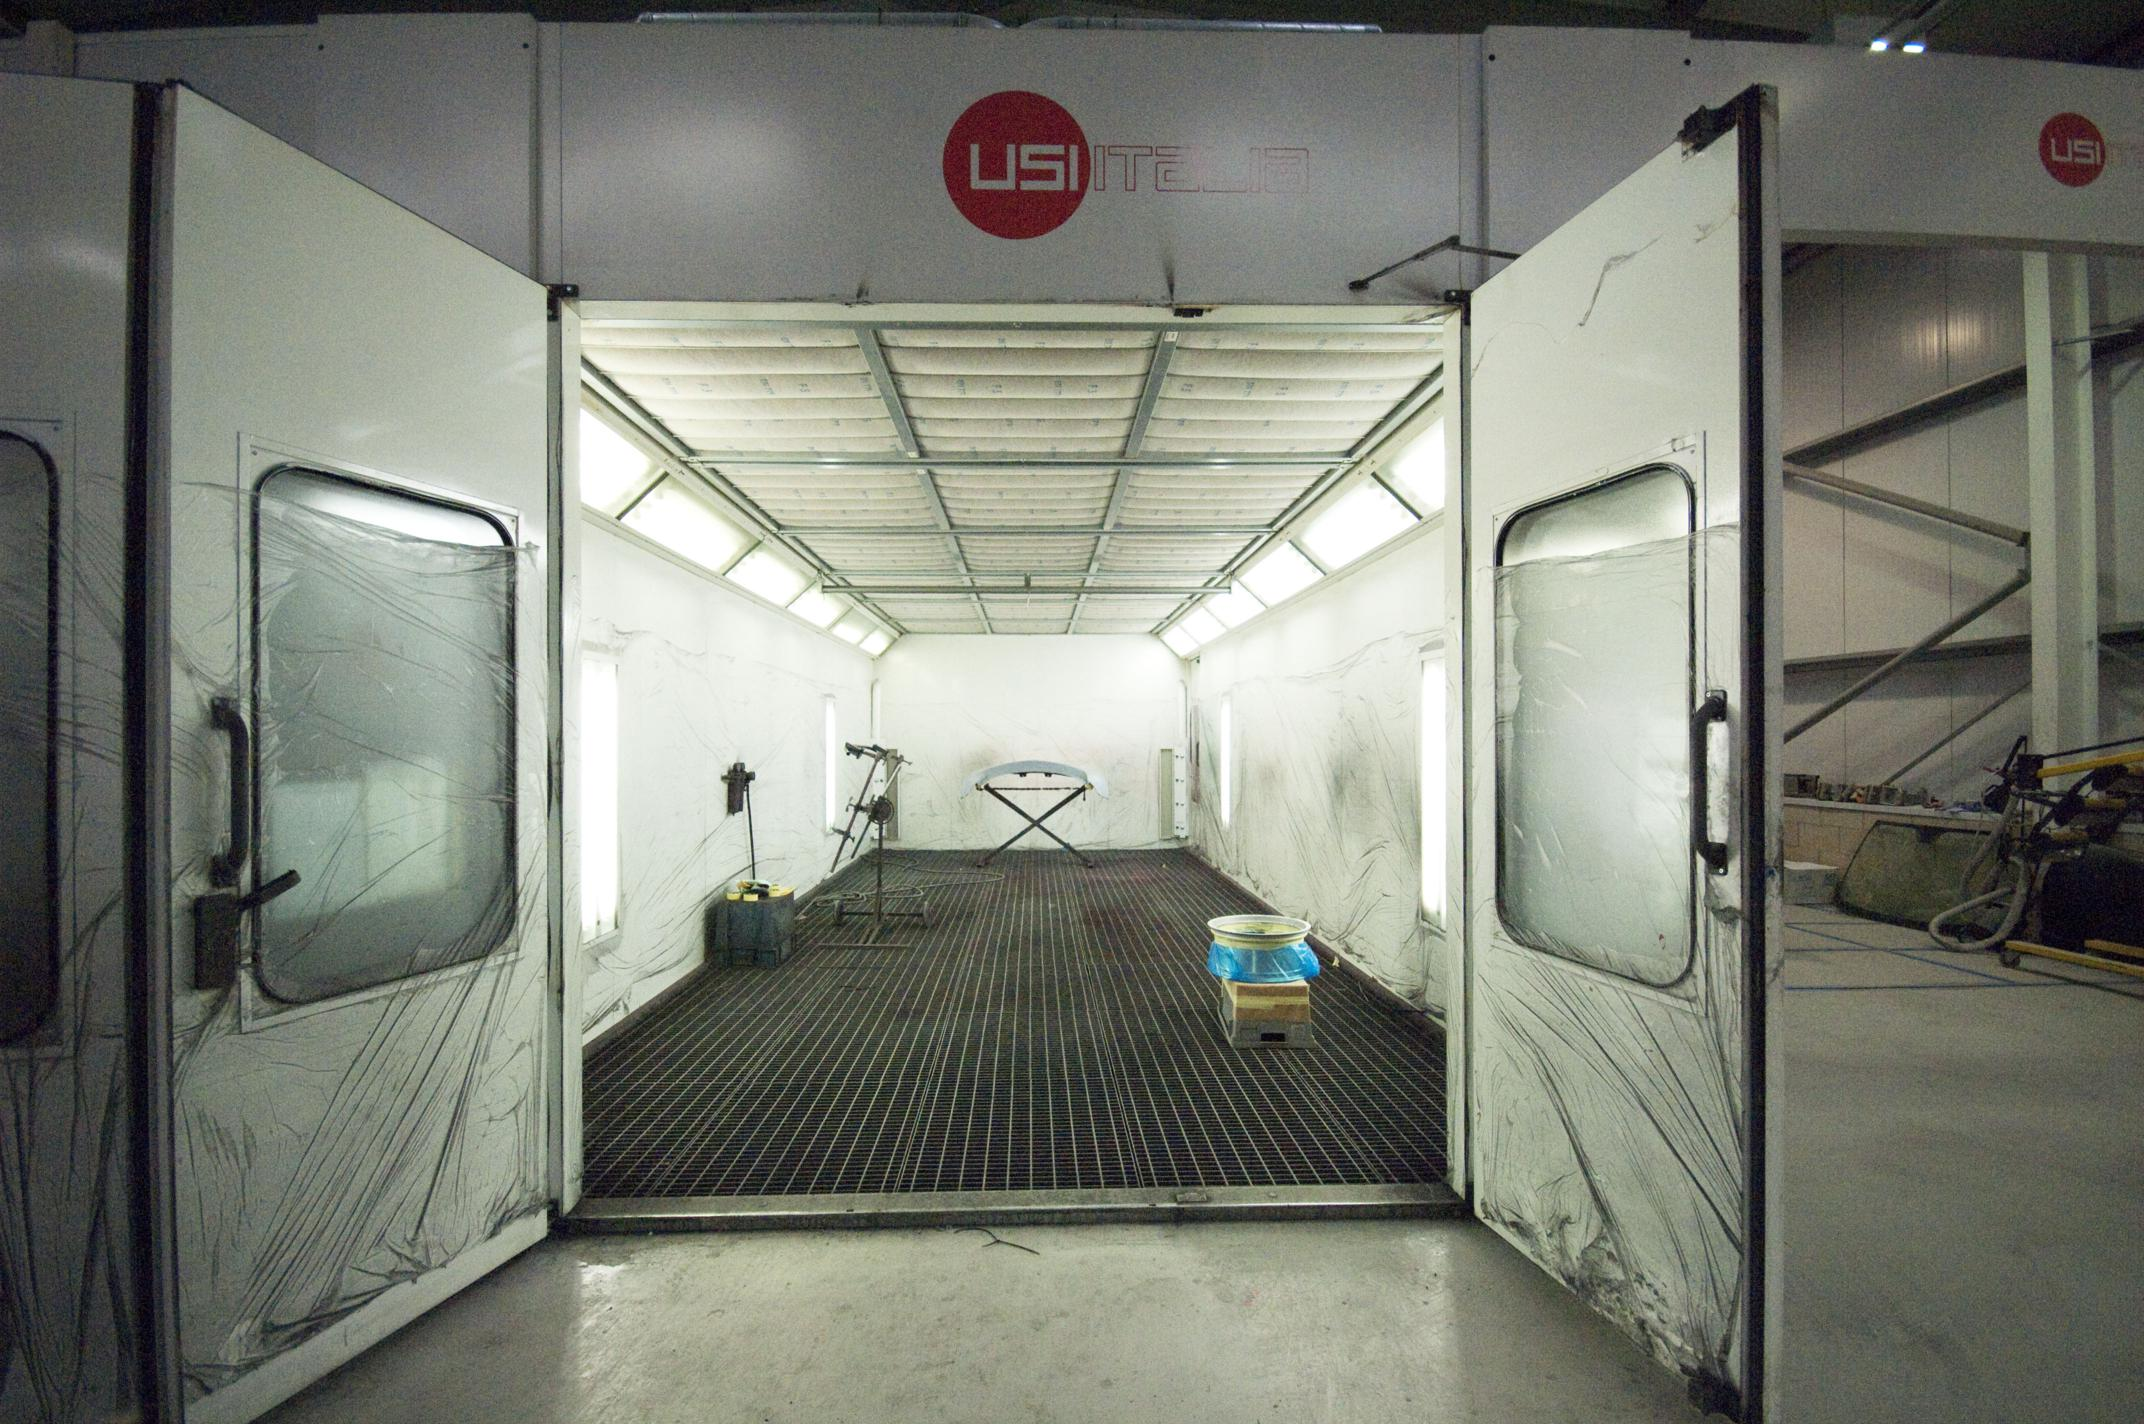 Junair Qads Spraybooth Technology Retro Fit Installation